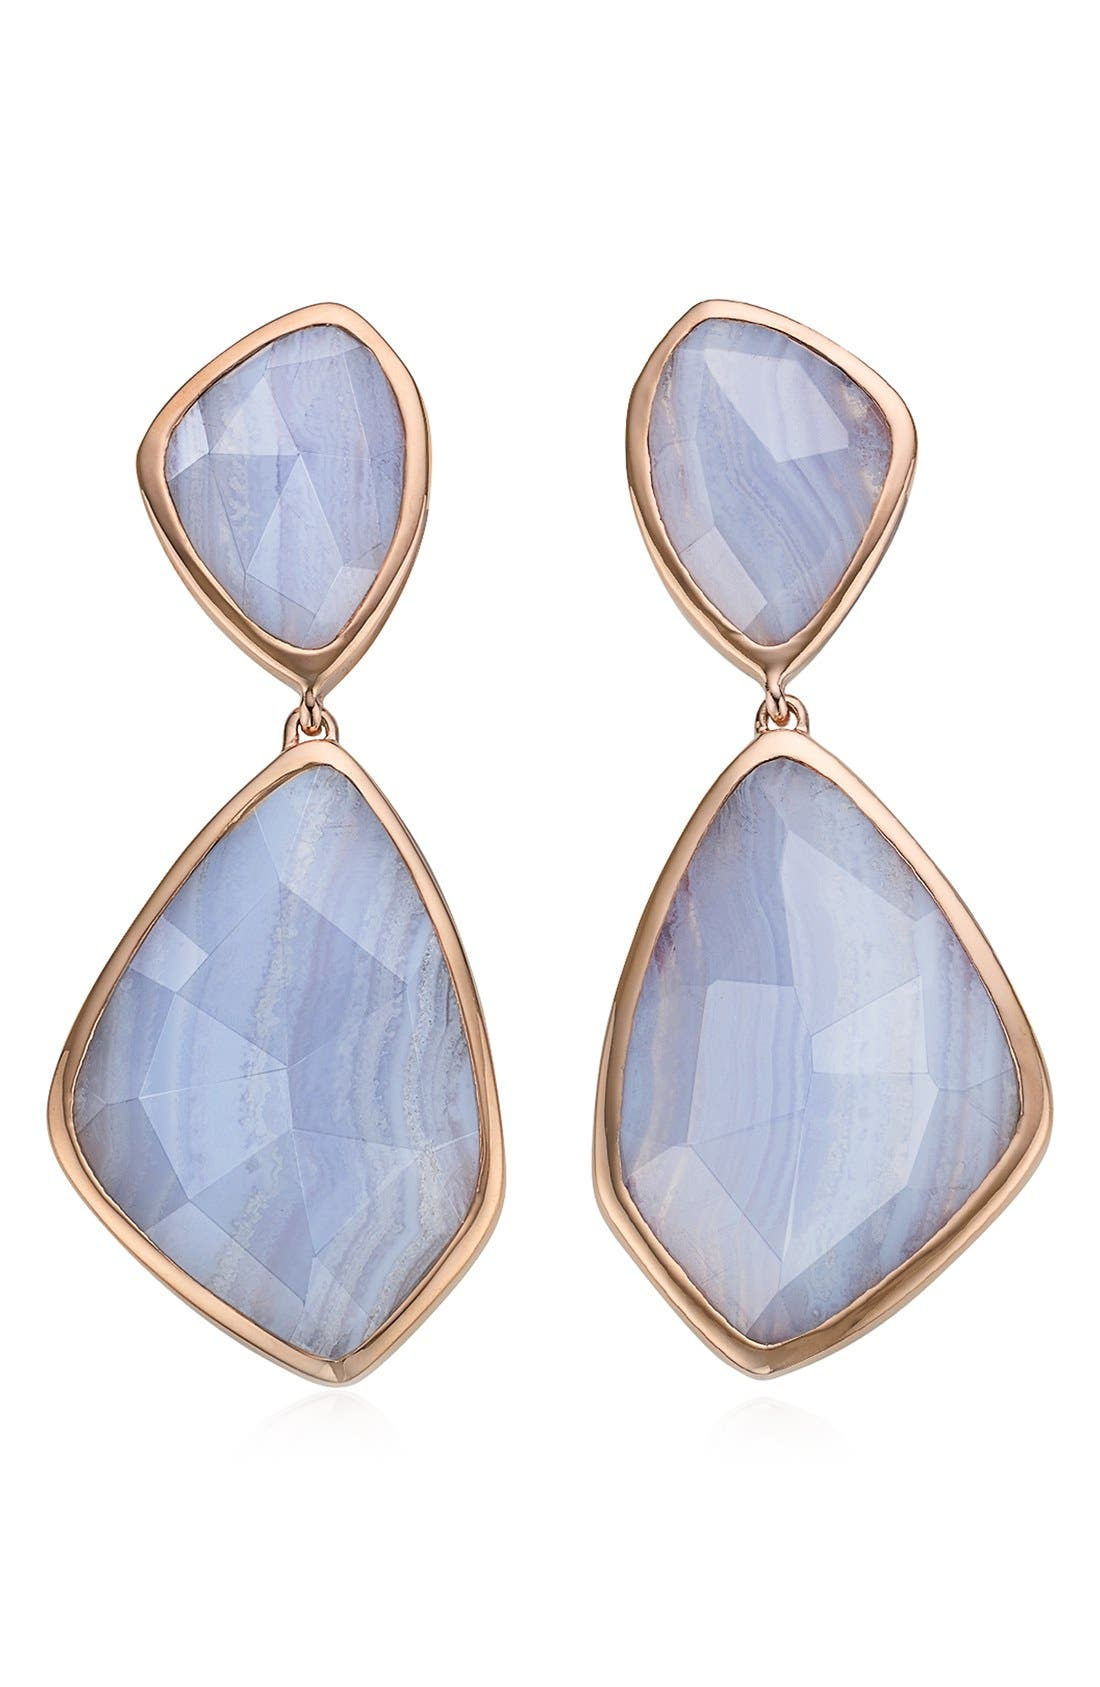 Main Image - Monica Vinader 'Siren' Semiprecious Stone Double Drop Earrings